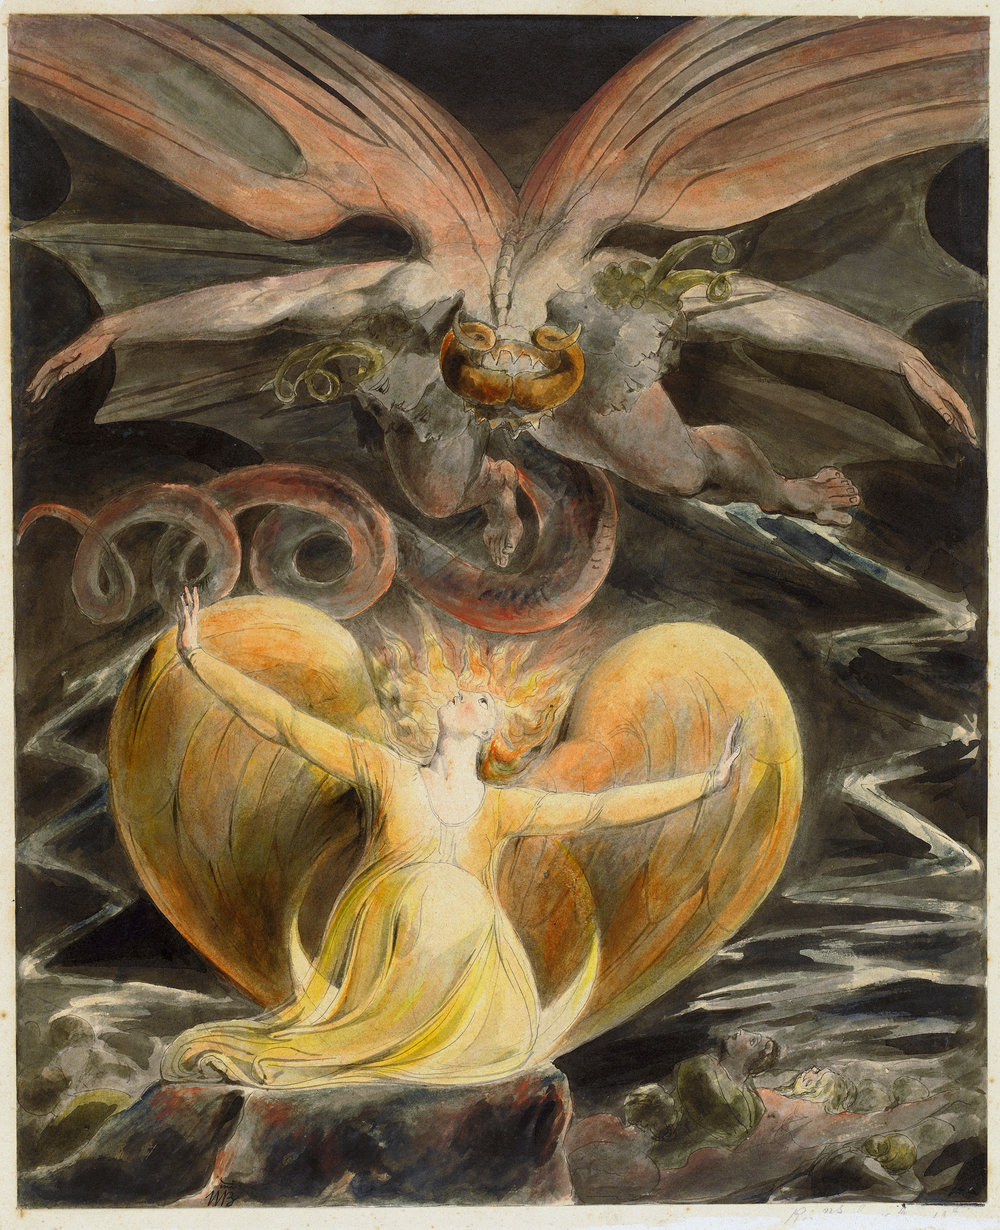 The Great Red Dragon and the Woman Clothed with the Sun  By William Blake, Public Domain, https://commons.wikimedia.org/w/index.php?curid=147895